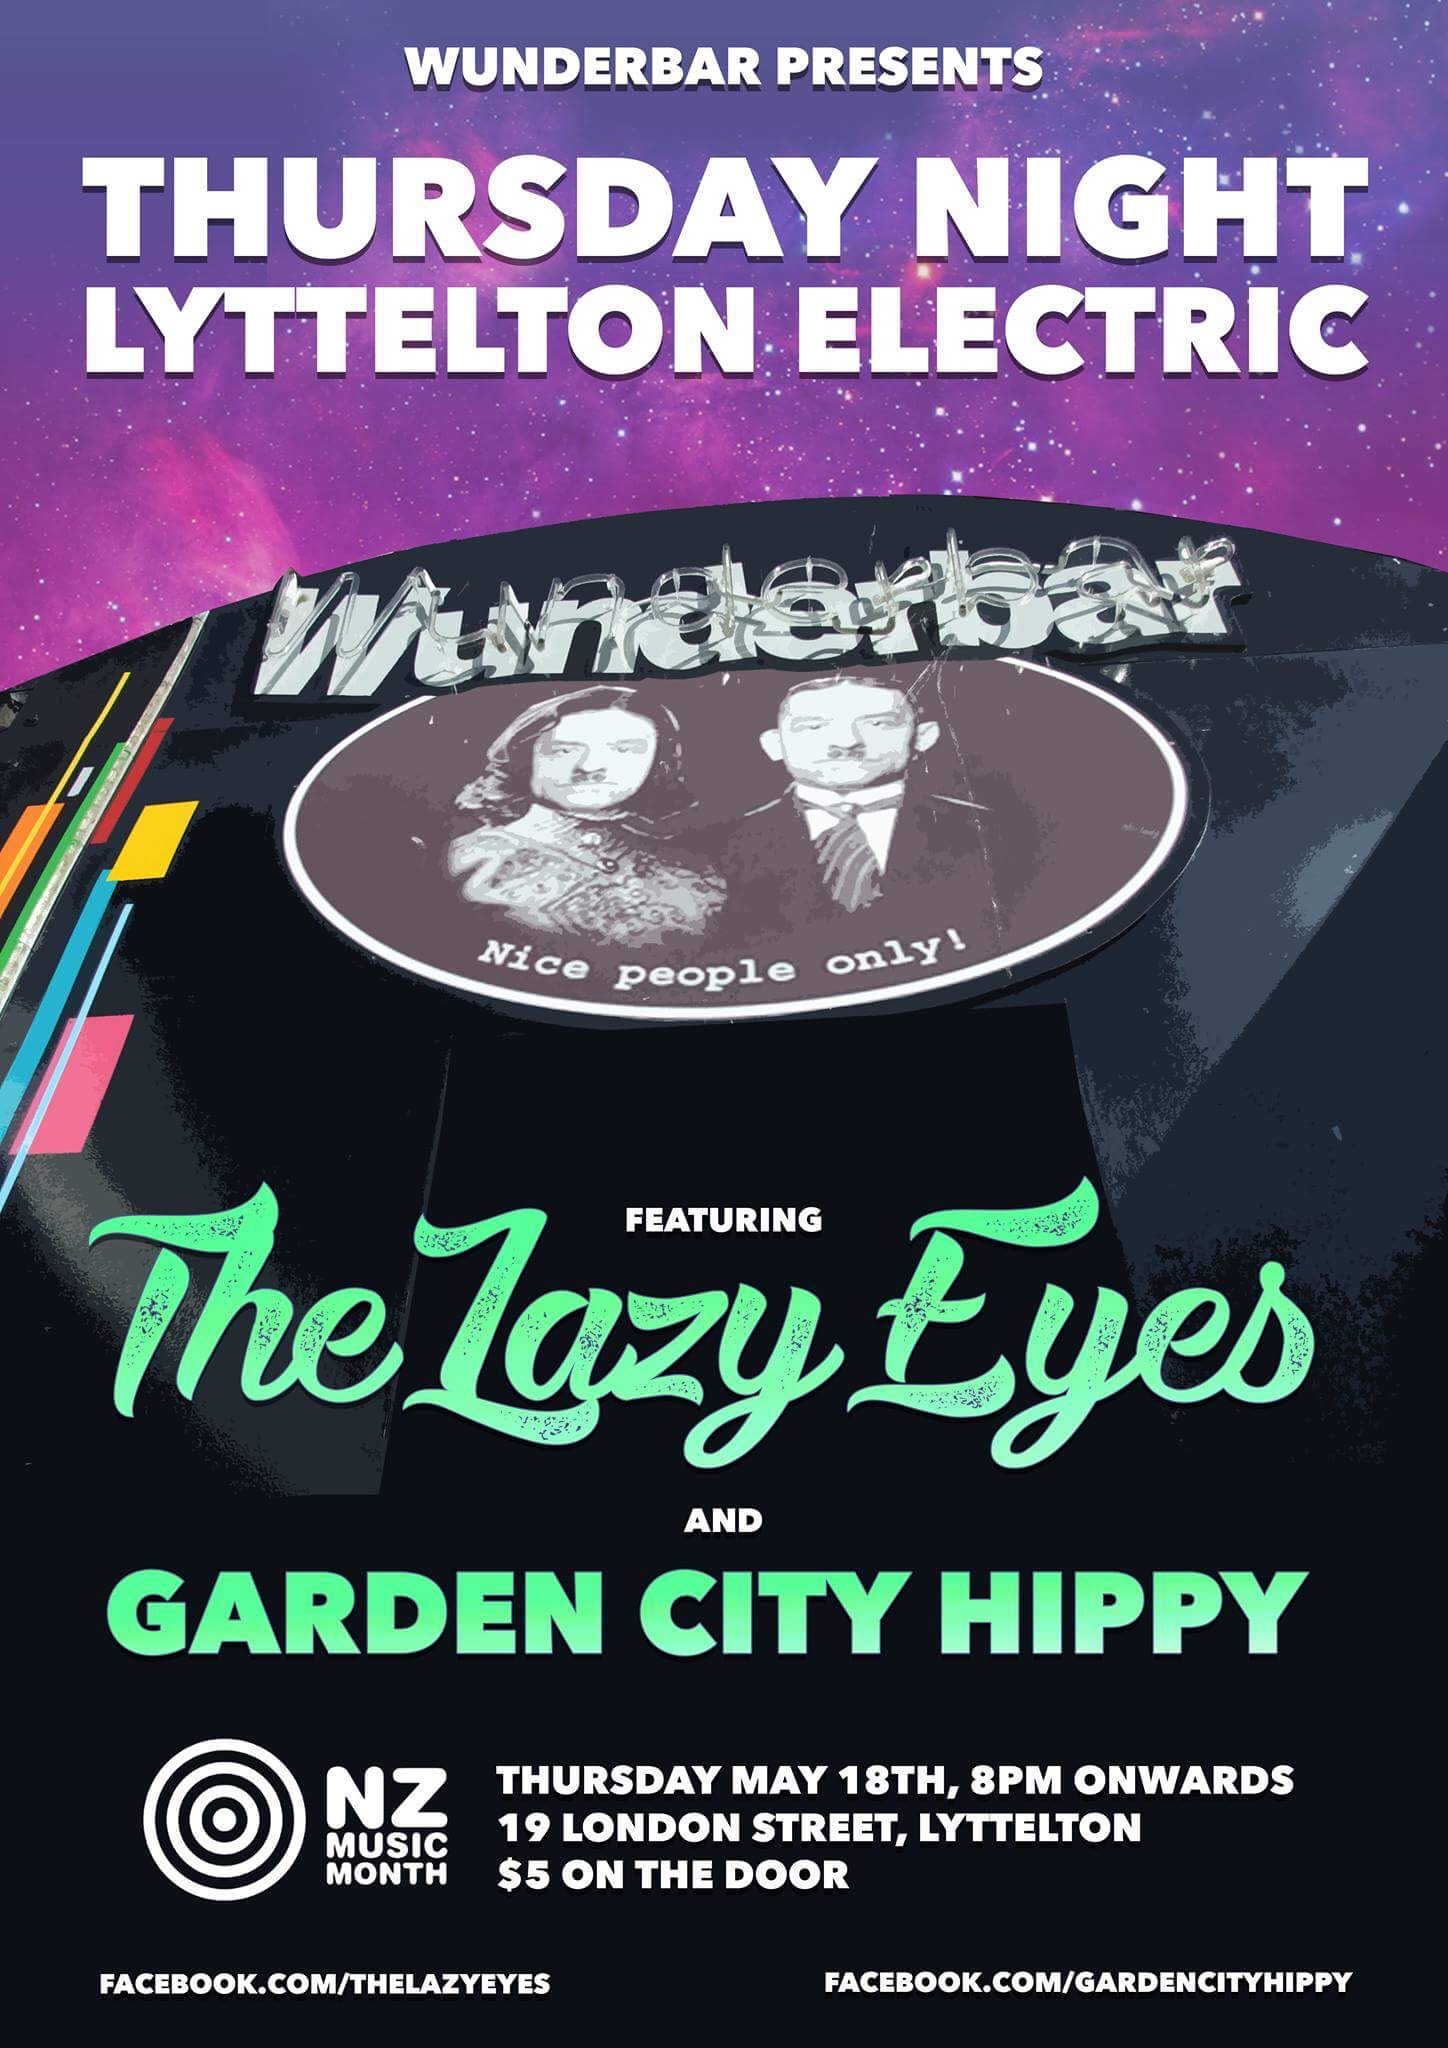 Thursday Night Lyttleton Electric